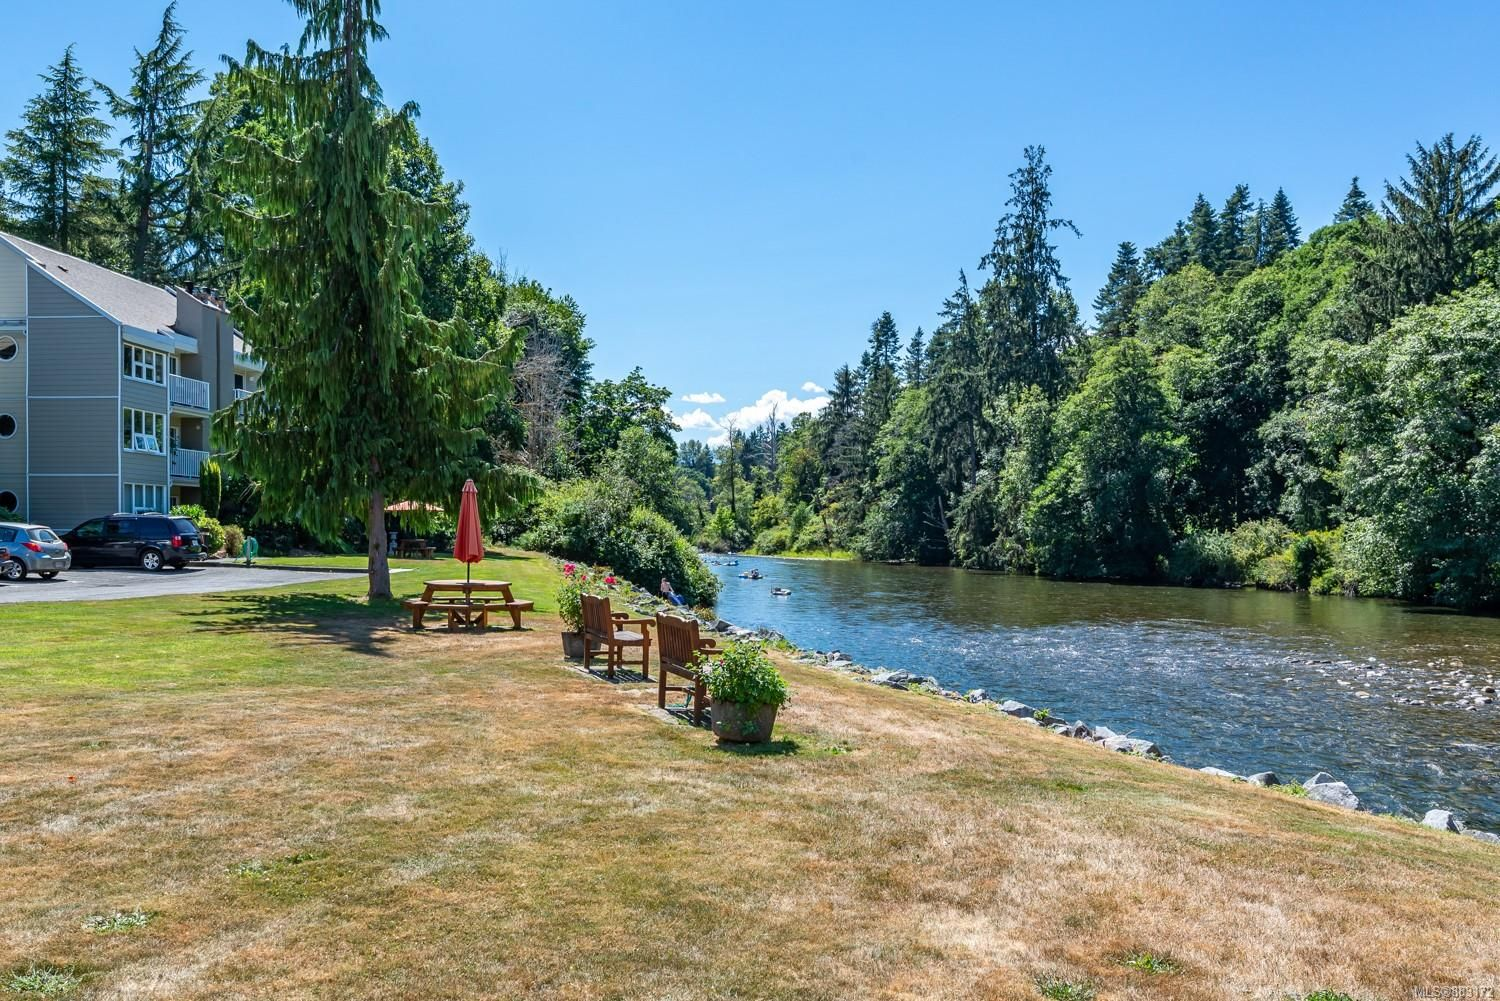 Photo 25: Photos: 303 205 1st St in : CV Courtenay City Row/Townhouse for sale (Comox Valley)  : MLS®# 883172